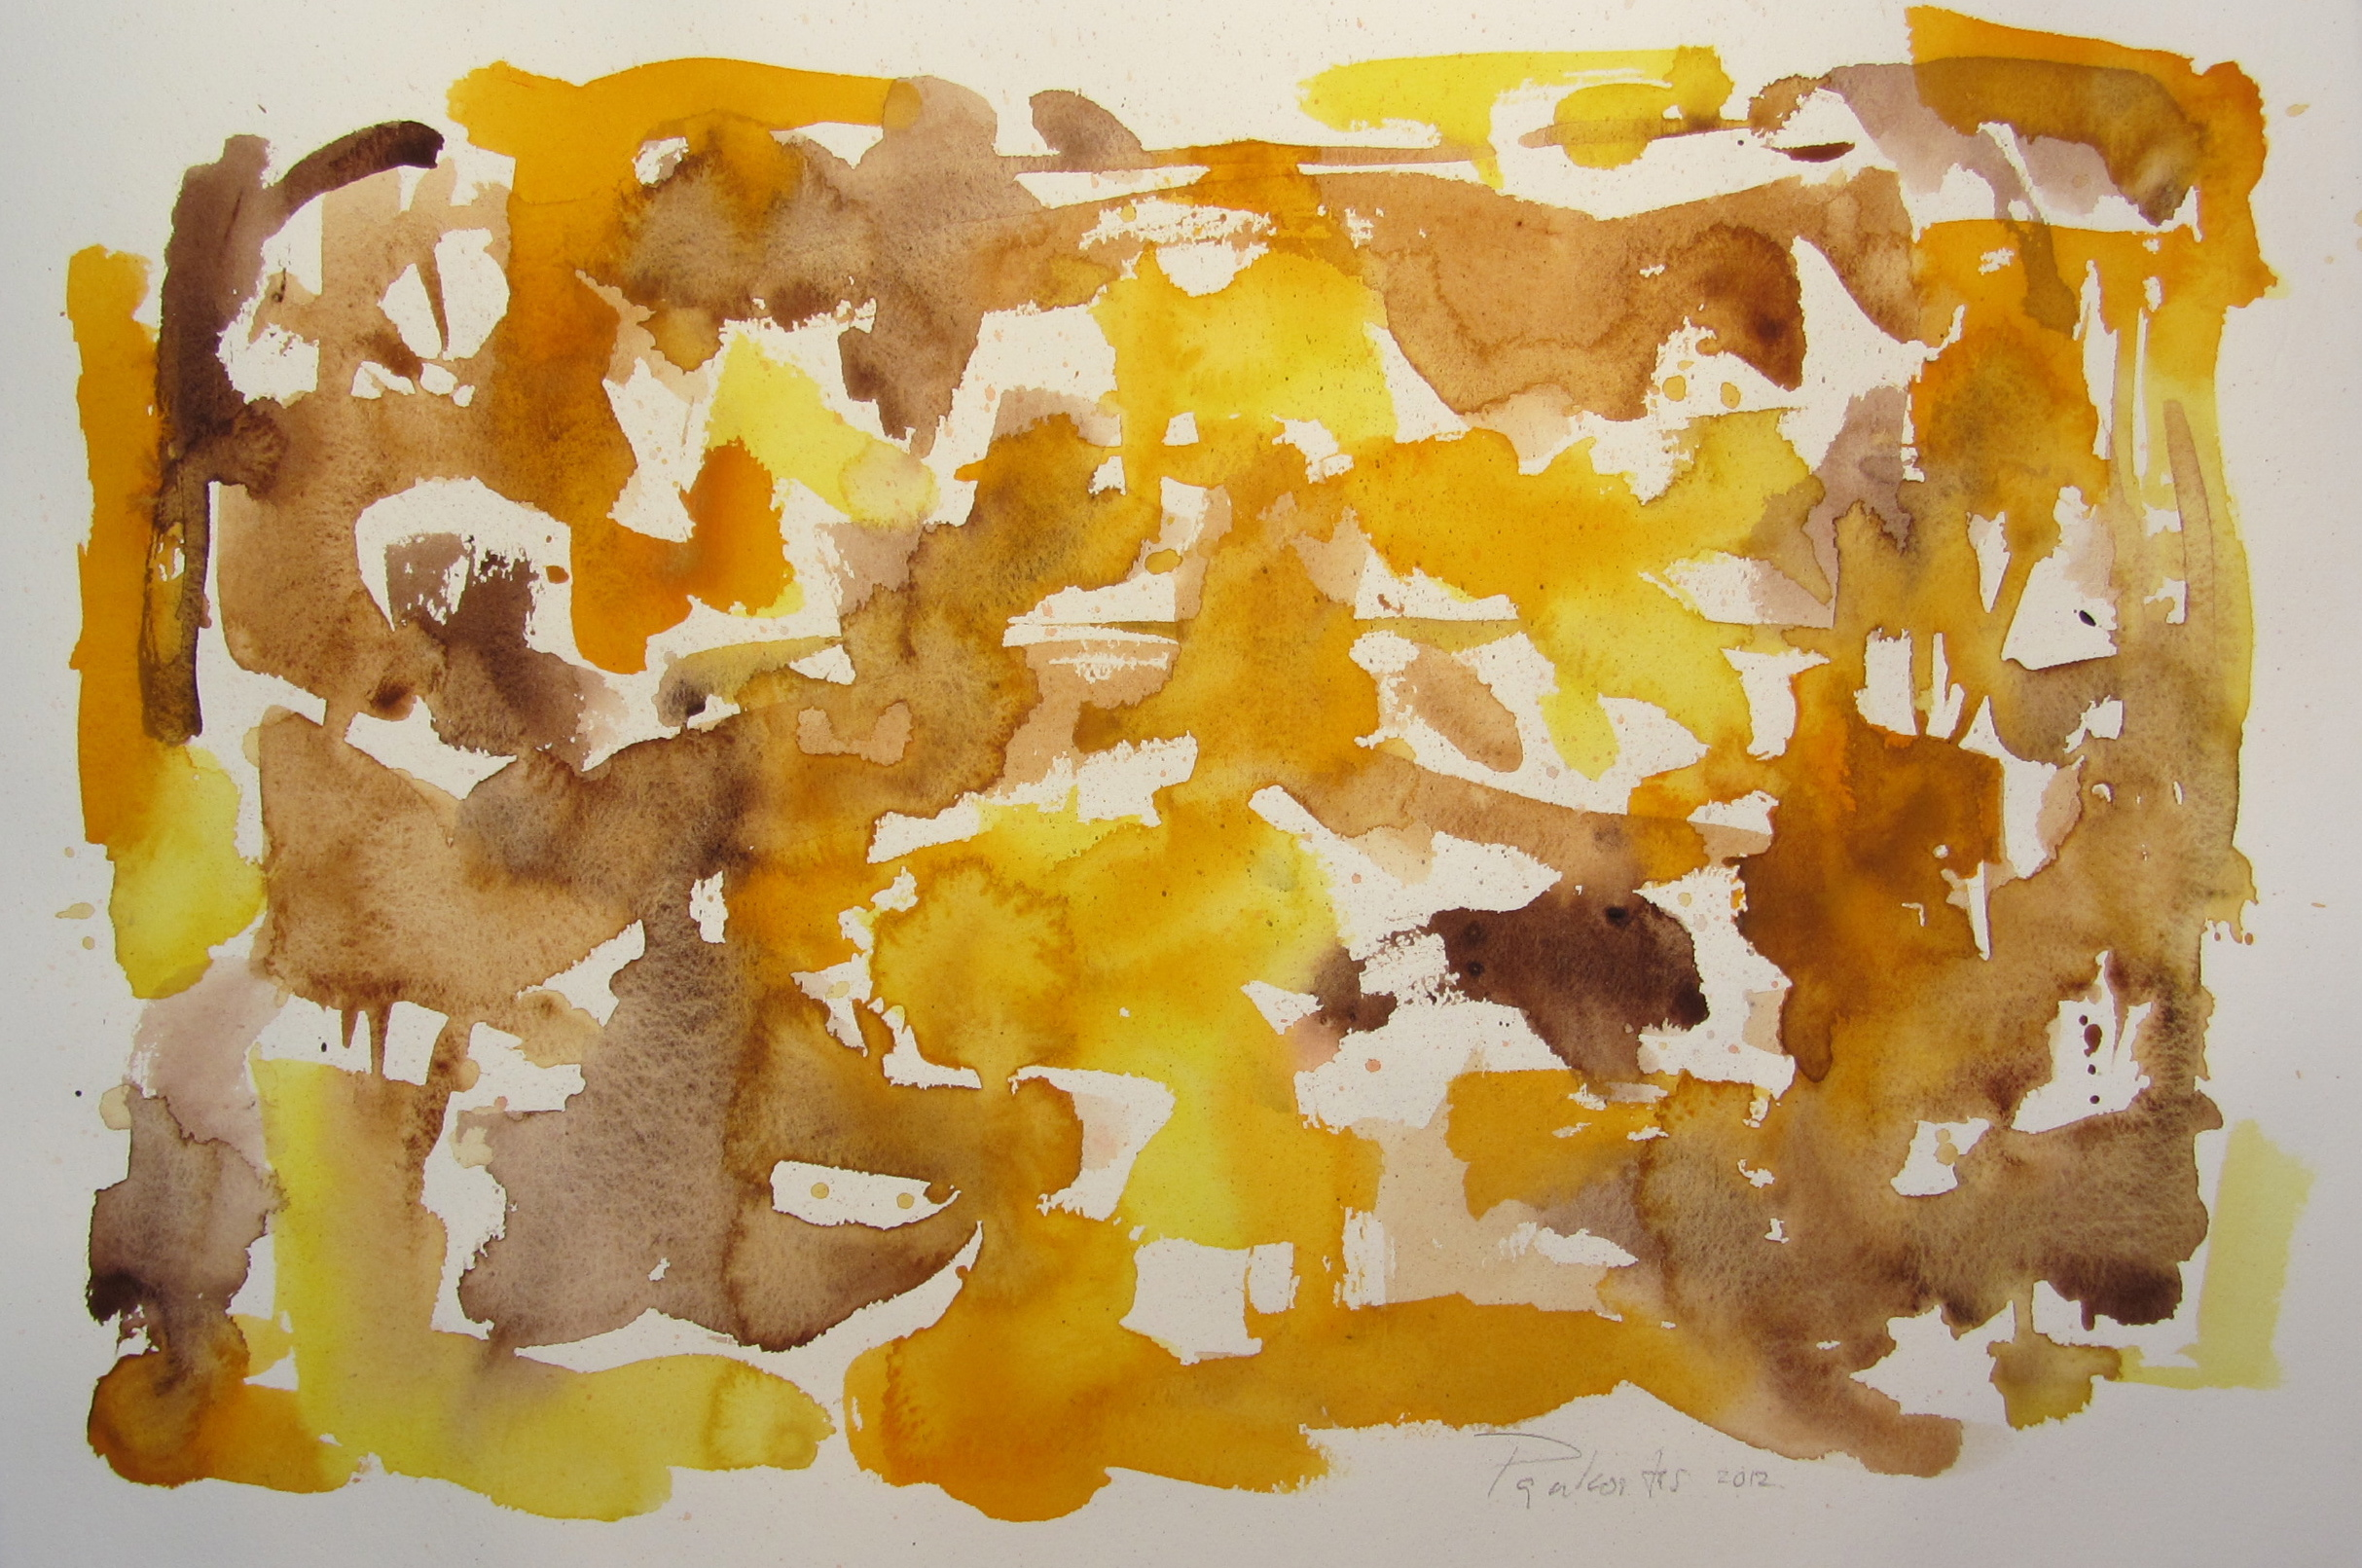 untitled 2012, watercolour on paper 38.10 x 55.88cm (15 x 22in.) -IMG_0023 .JPG